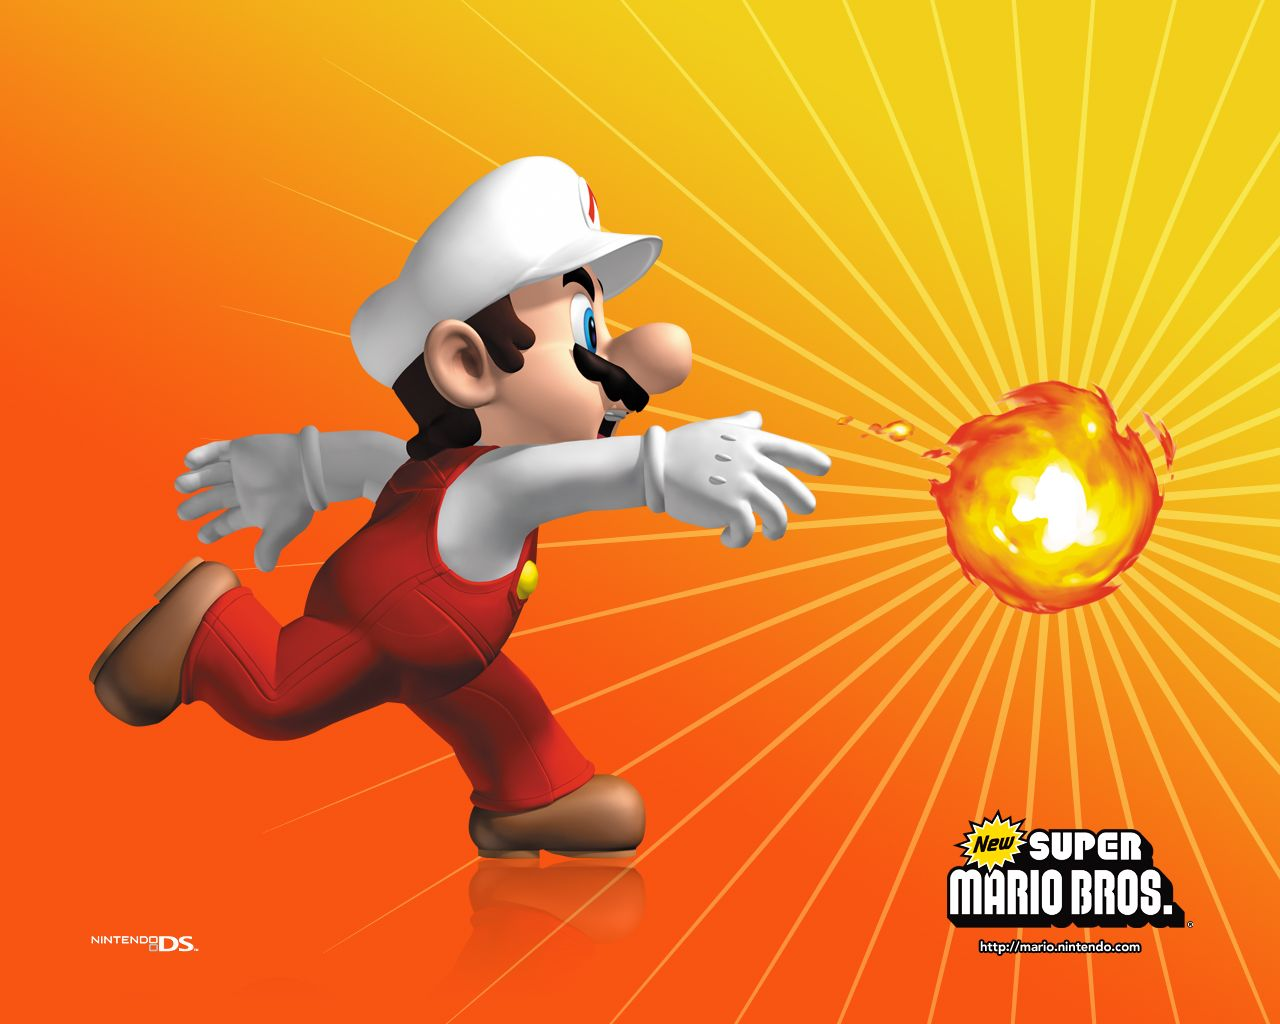 Super Mario Bros Hd Wallpapers And Backgrounds マリオ マリオ